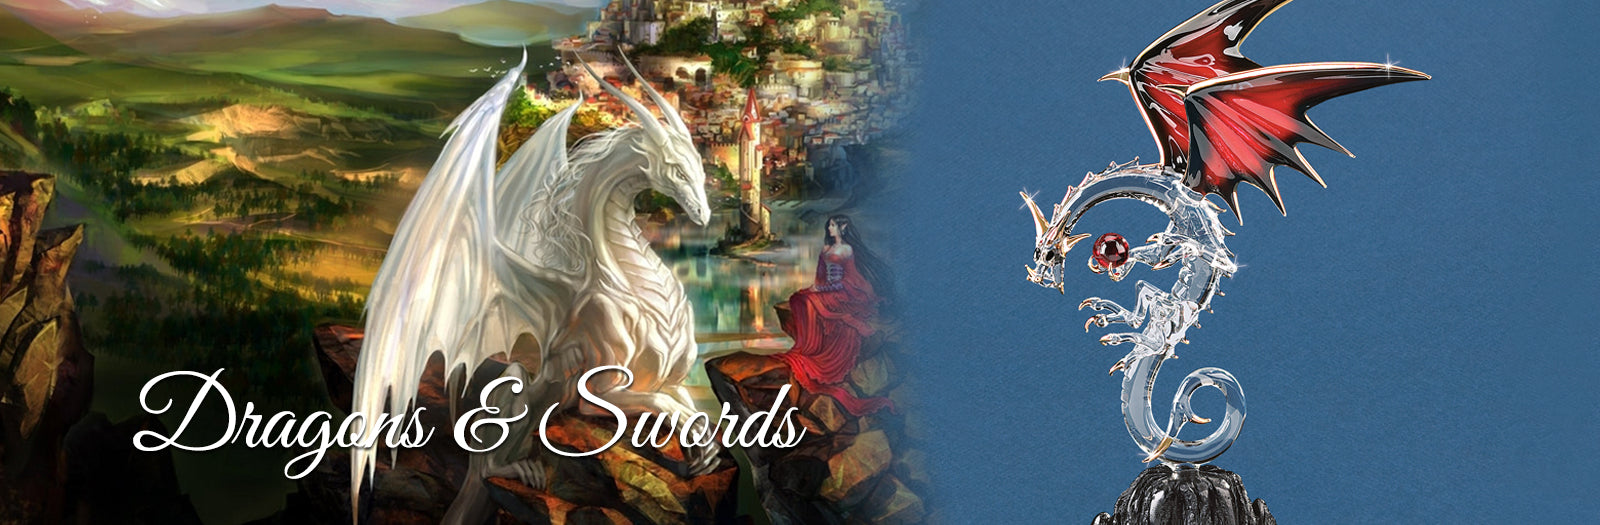 Shop mystical legends with this collection of handcrafted glass art dragons and swords.